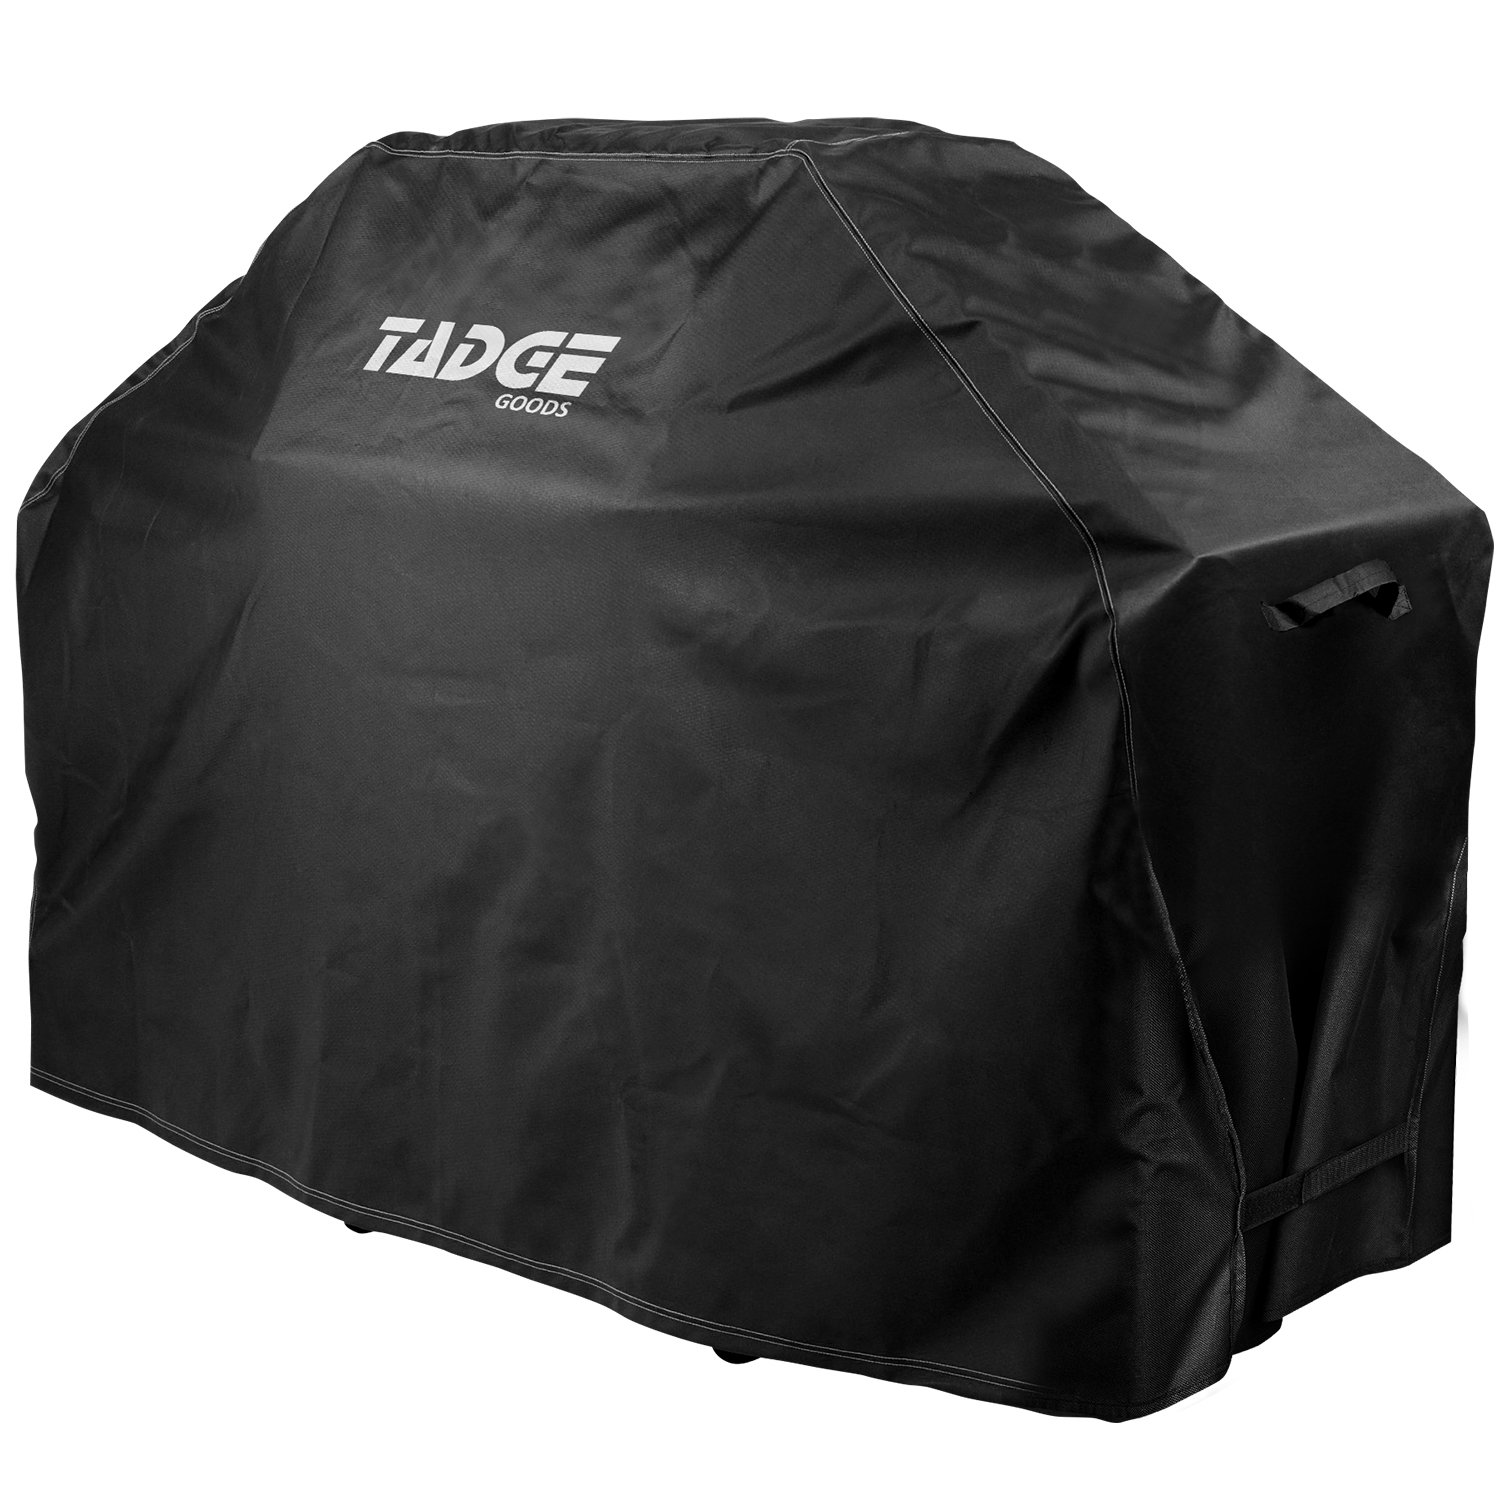 Tadge Goods BBQ Grill Cover w/Handles (58'' Black) Waterproof, Heavy Duty | Large Universal Weber Charbroil Fit with Strap Fasteners | Gas, Charcoal, Electric by Tadge Goods